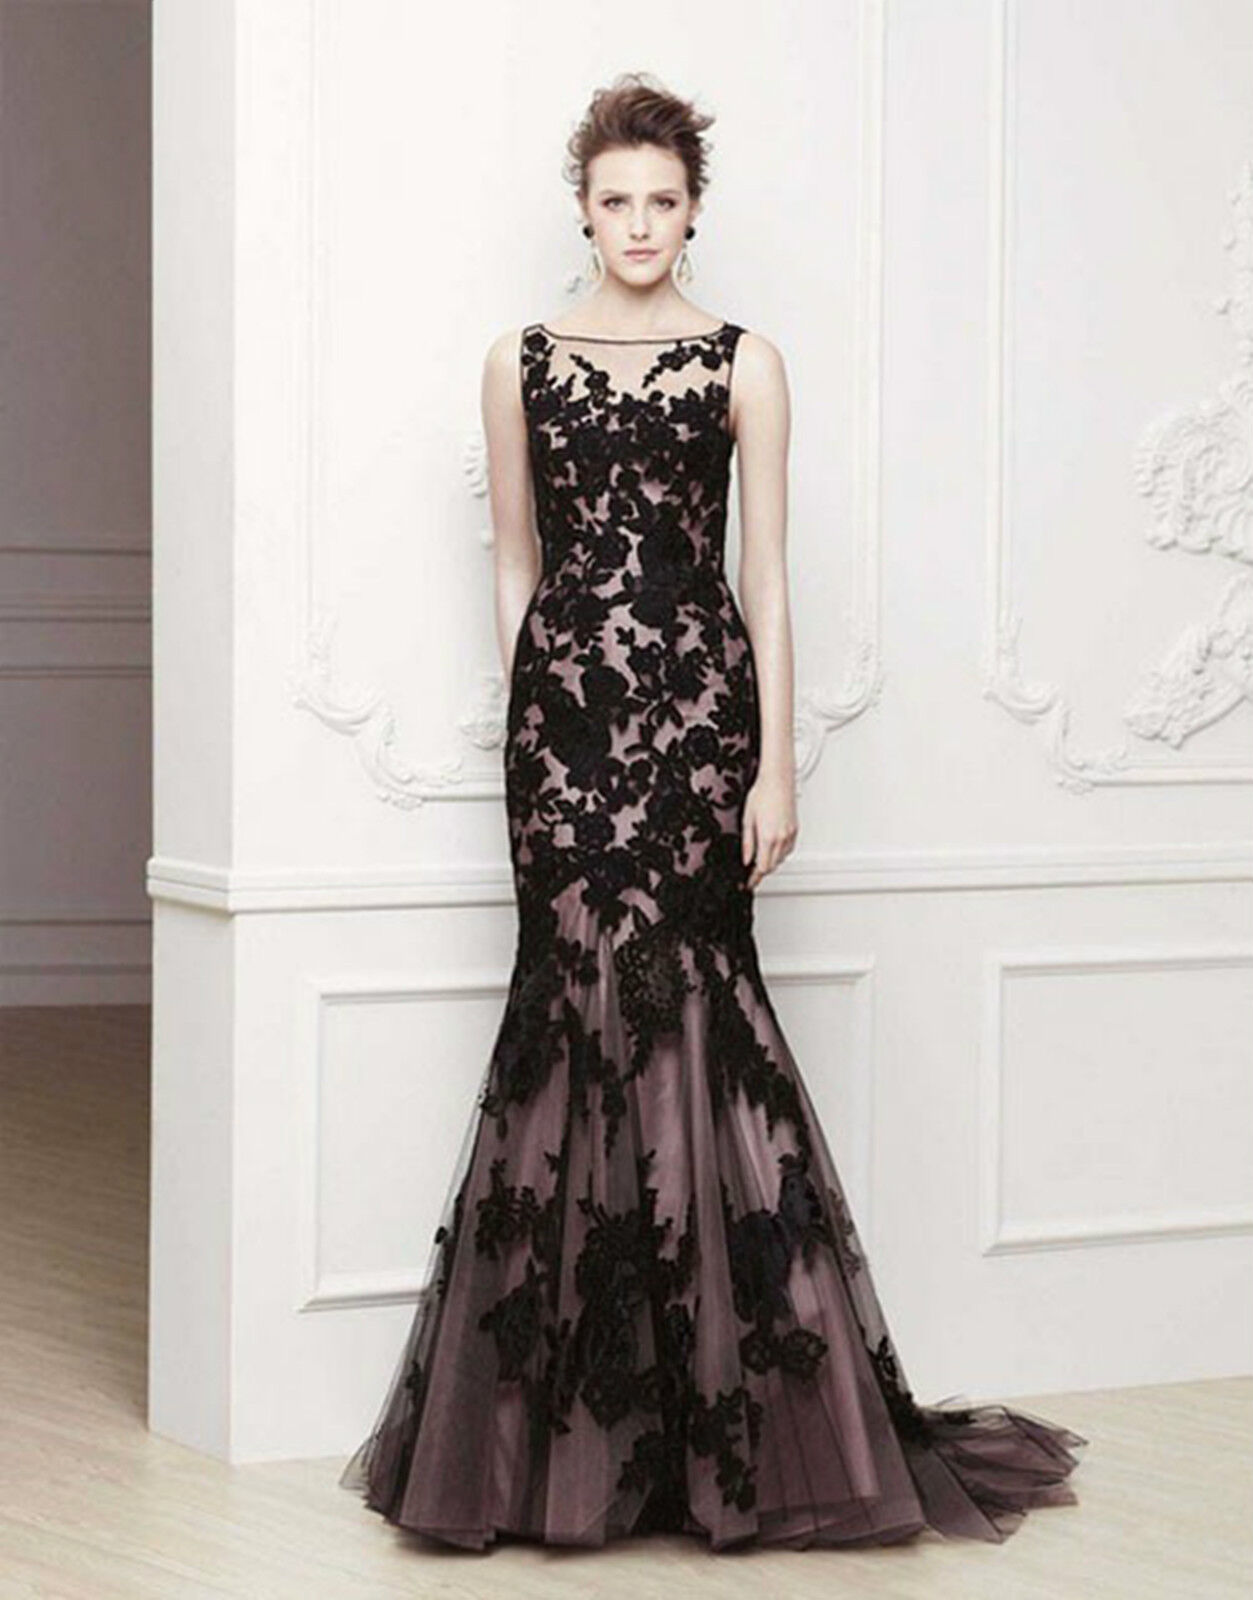 Long Black Applique Evening Formal Prom Party Cocktail Dresses Wedding Gown